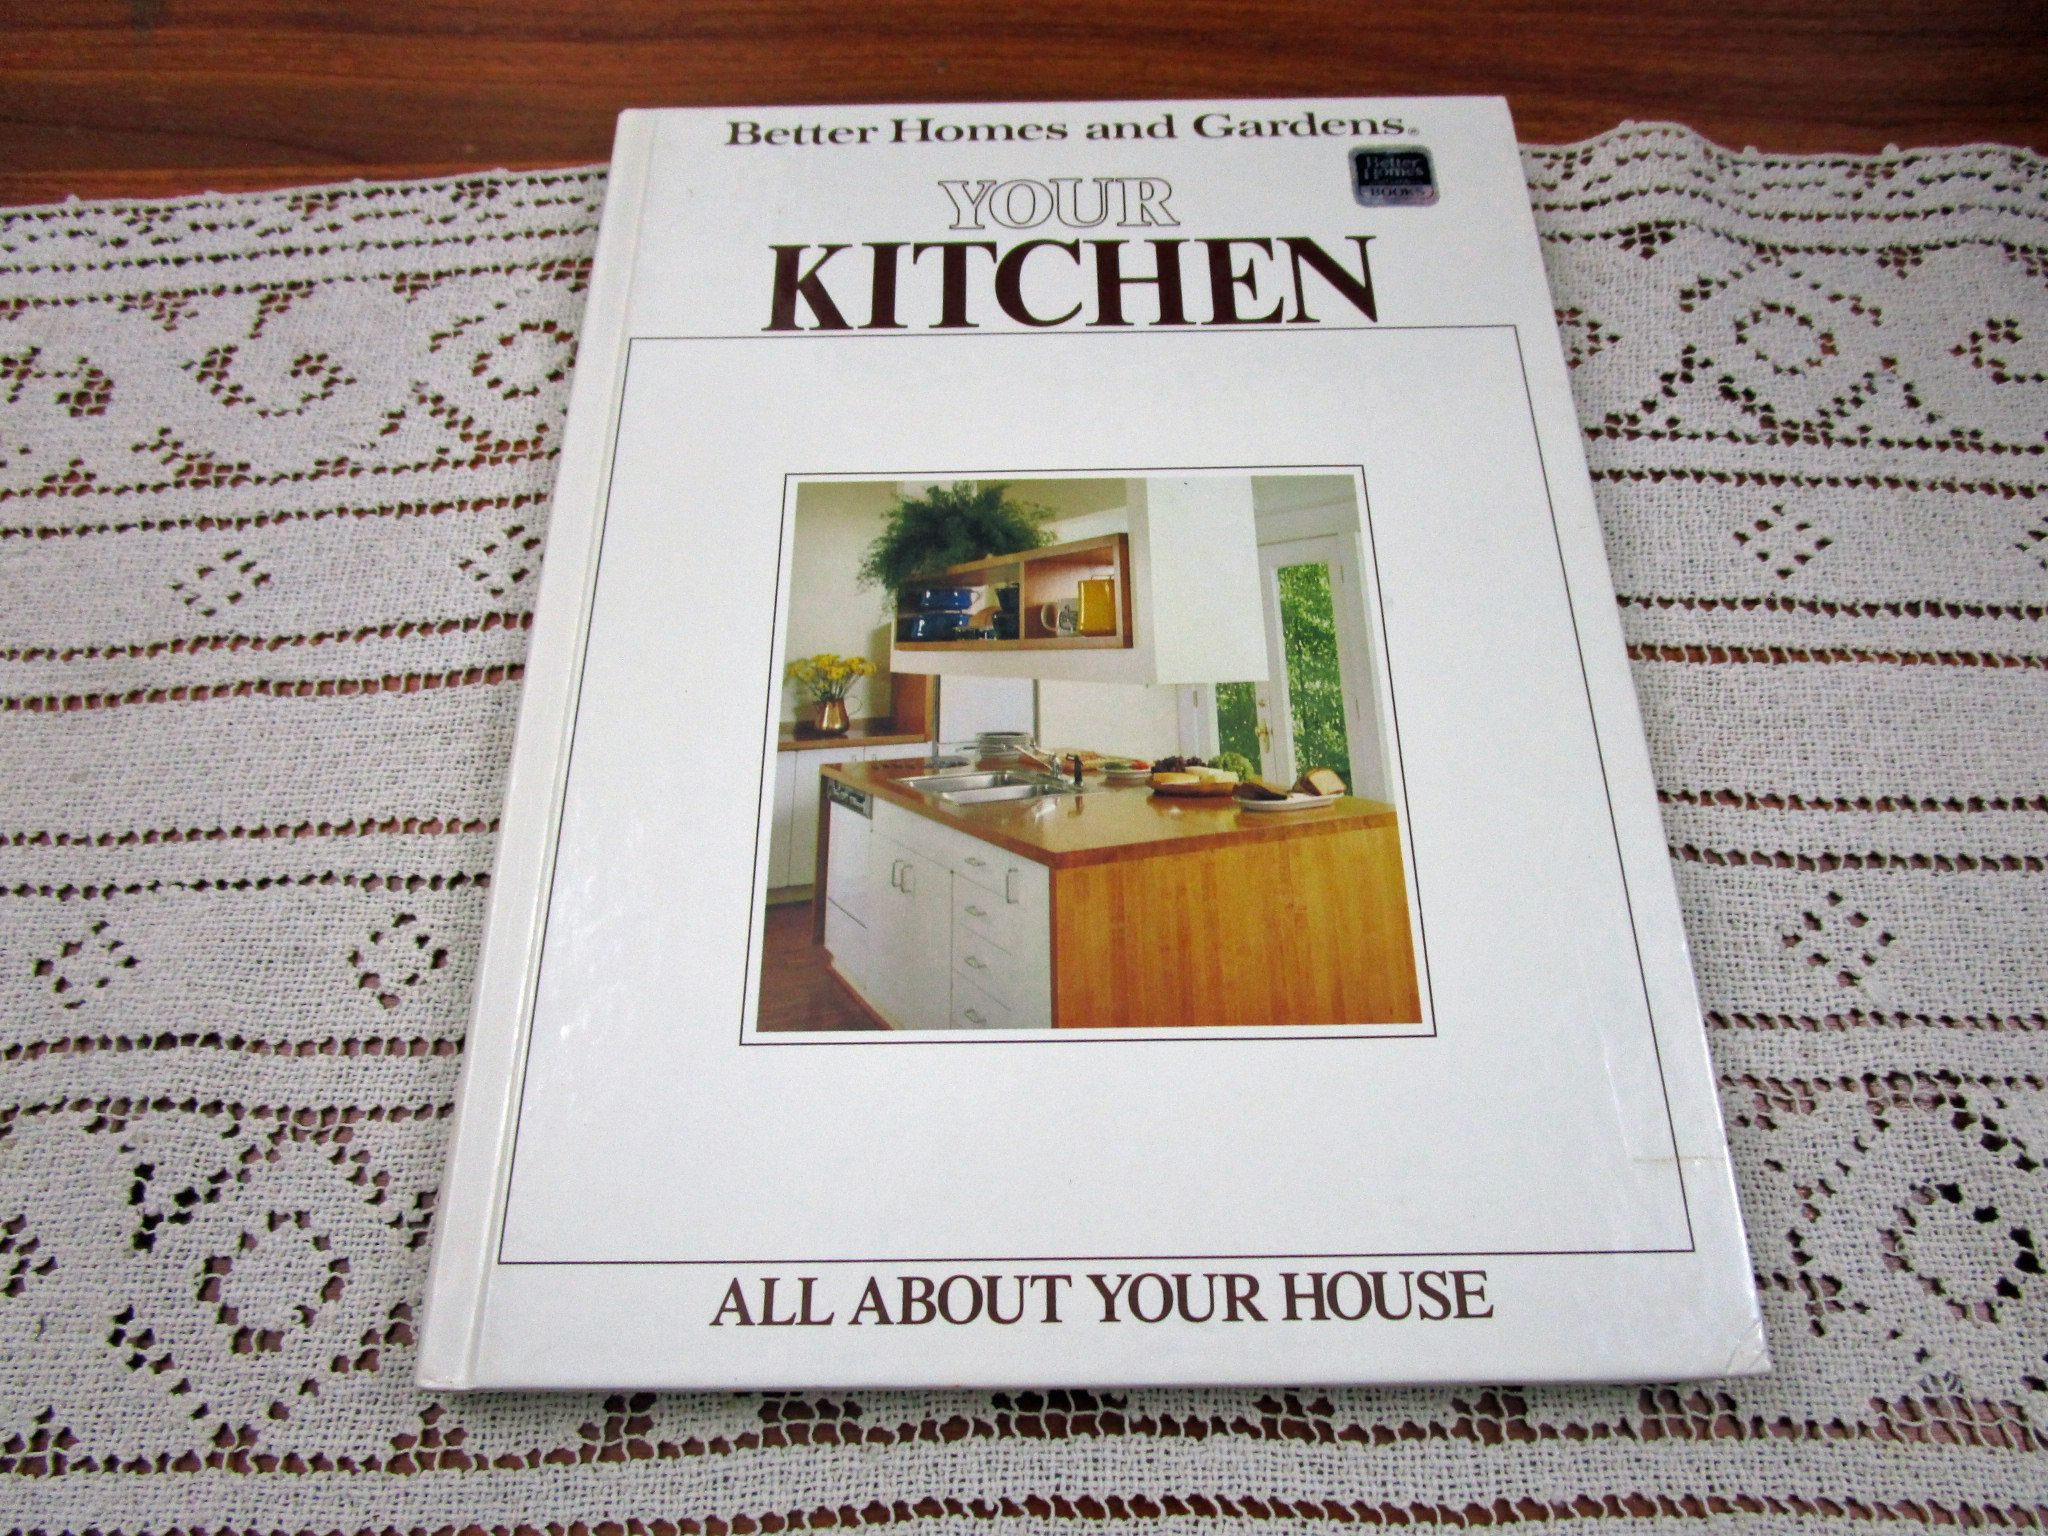 Vintage Your Kitchen Better Homes and Gardens BHG All About Your House Series Hardcover Book Projects How To by KattsCurioCabinet on Etsy